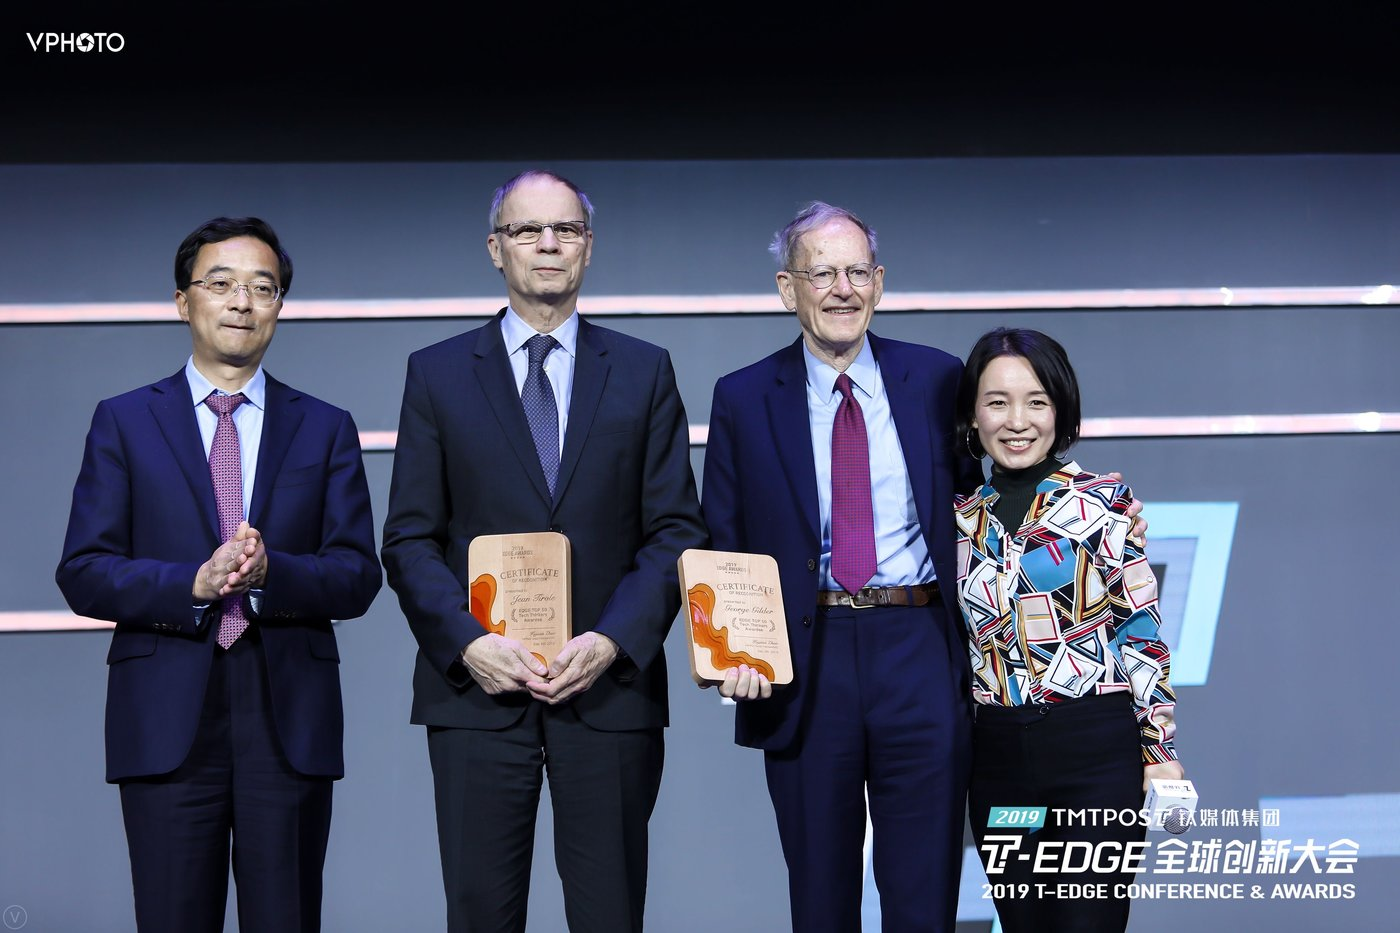 Head of Beijing's Daxing District Wang Youguo (left), Nobel laureate Jean Tirole, economist George Gilder and TMTPOST Group founder and CEO Zhao Hejuan at the T-EDGE Awards